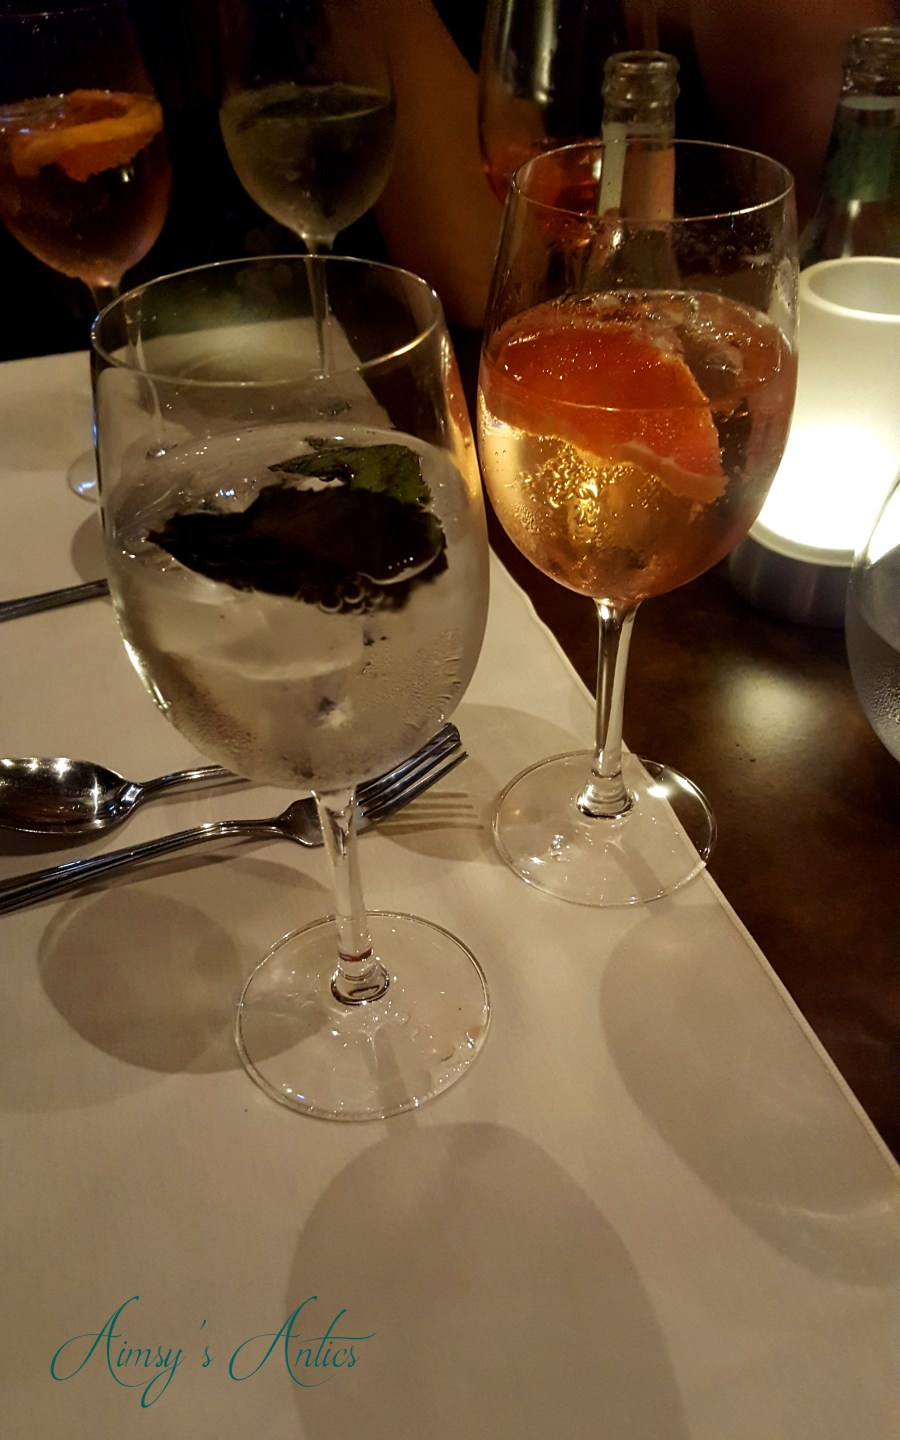 Two glasses of gin on a table with grapefruit and mint leaves garnishes